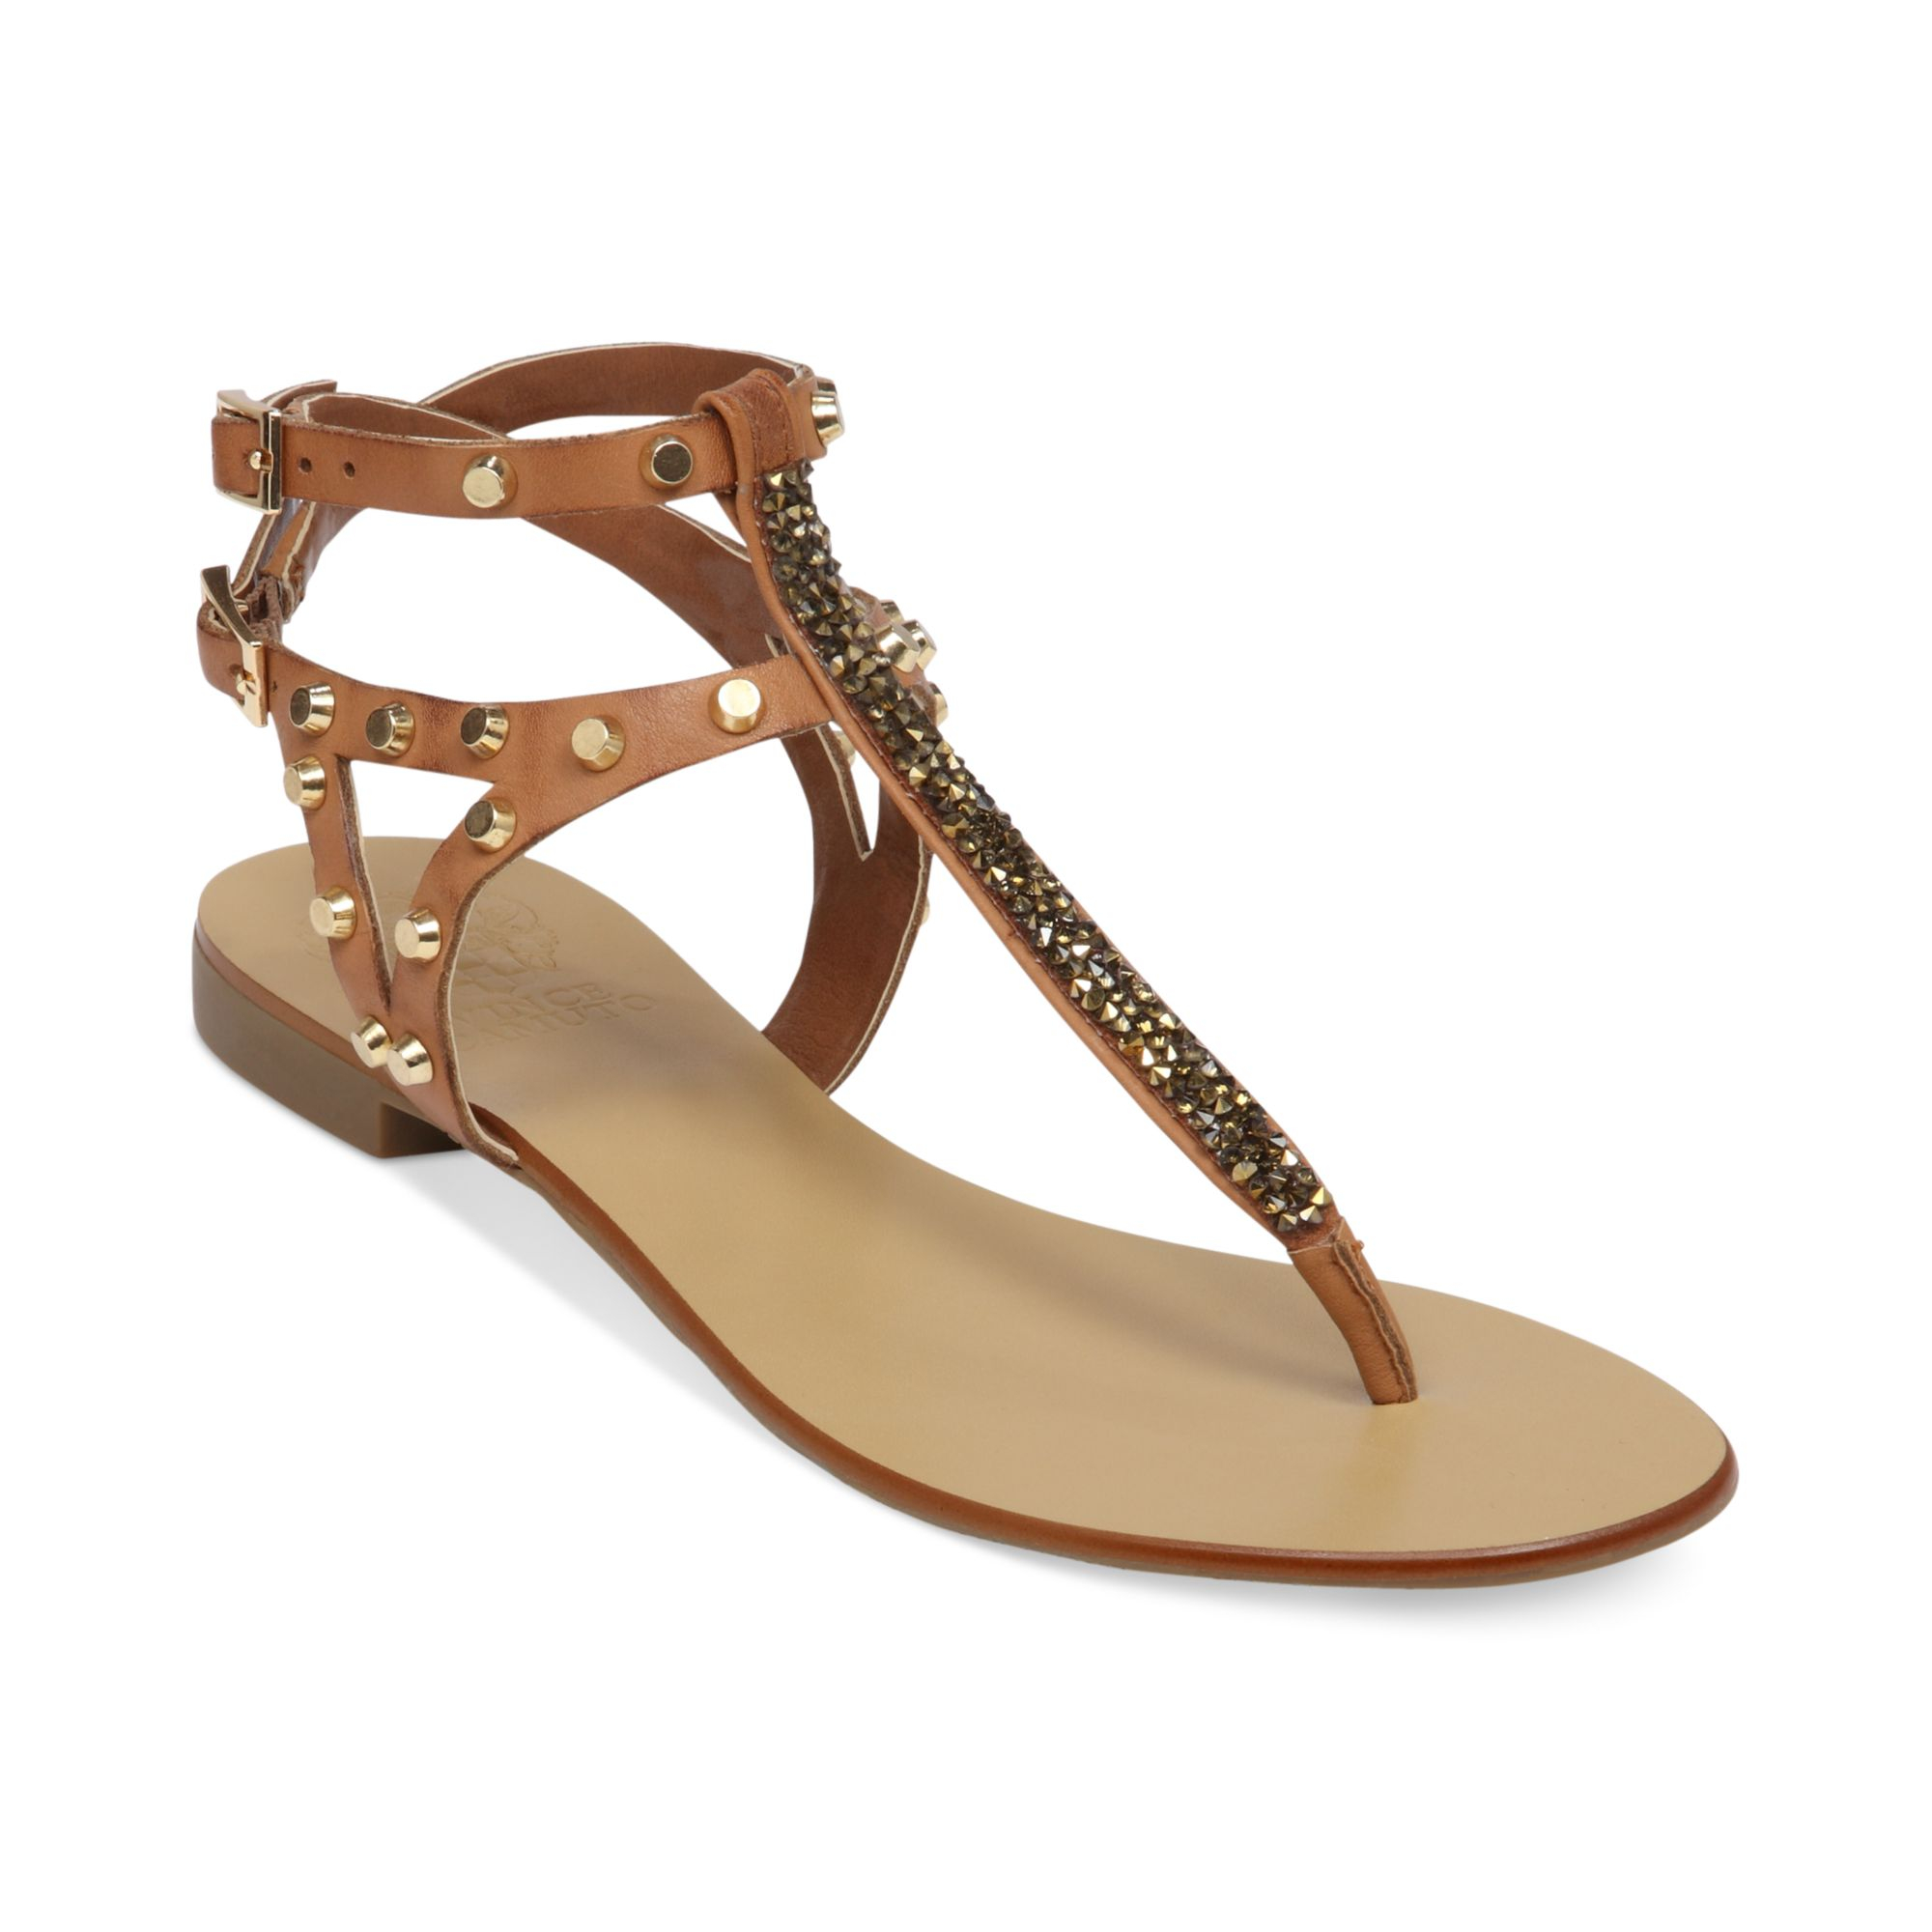 d57b08696b8 Lyst - Vince Camuto Jemile Flat Thong Sandals in Natural